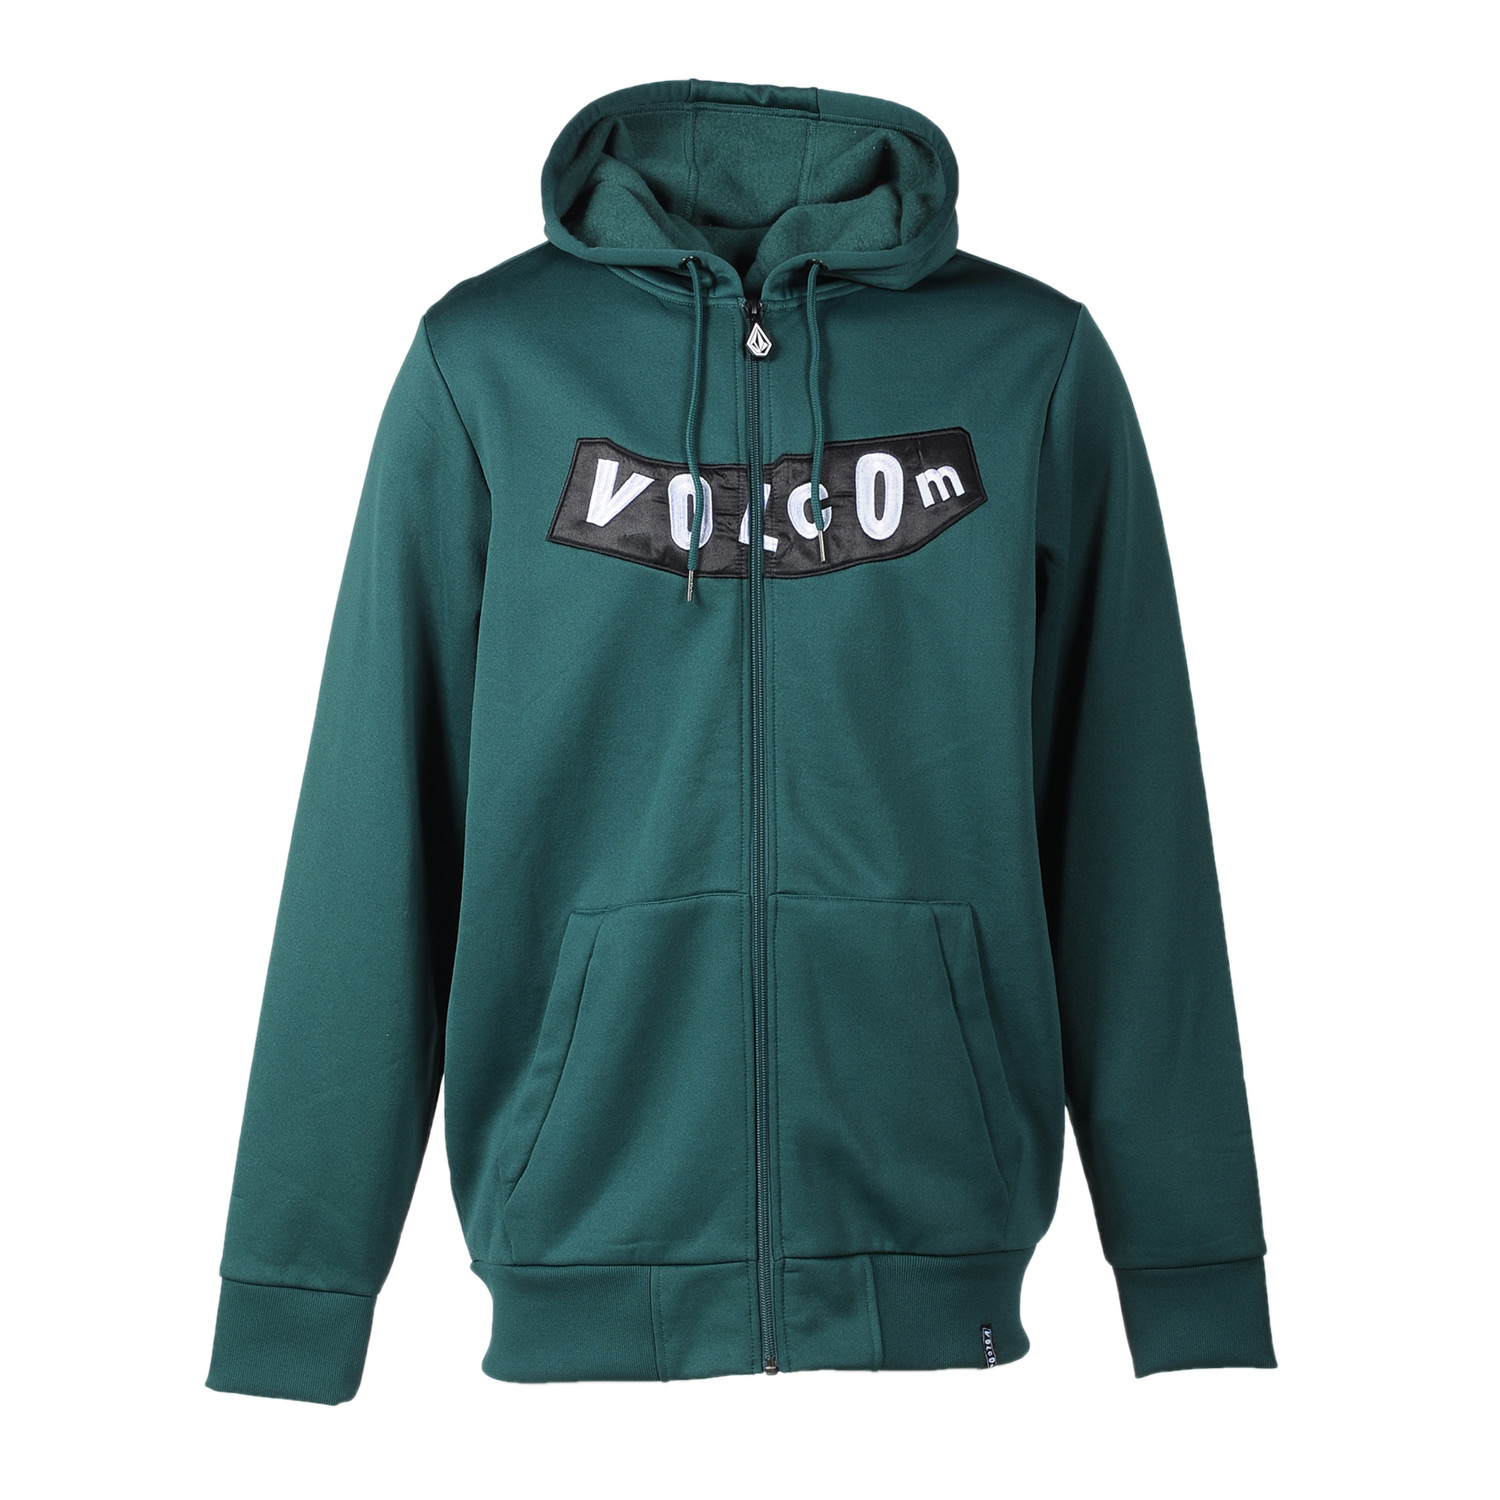 Surf Key Features of the Volcom Pistol Hydro Fleece Hoodie: 280Gm Hydro Fleece Standard Fit Zippered Hand Pockets Drawcord Hood Cinch Whistle Zipper Pull Stone Woven Label Volcom Pistol Applique - $48.95